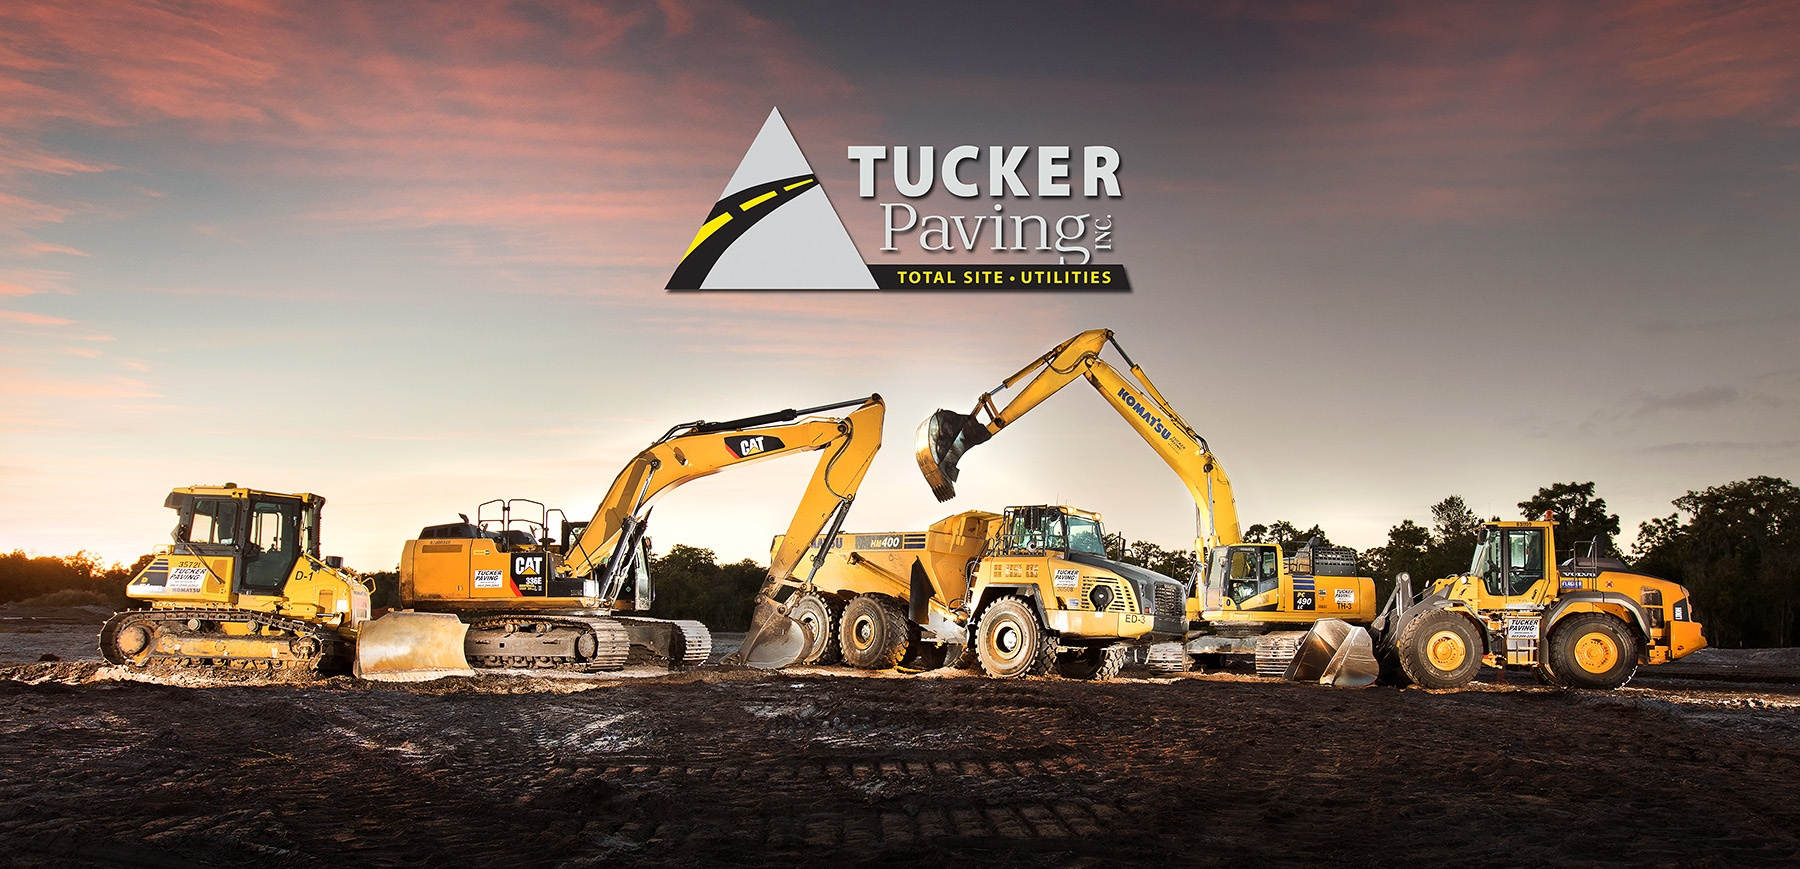 Tucker Paving Builds on Vistage